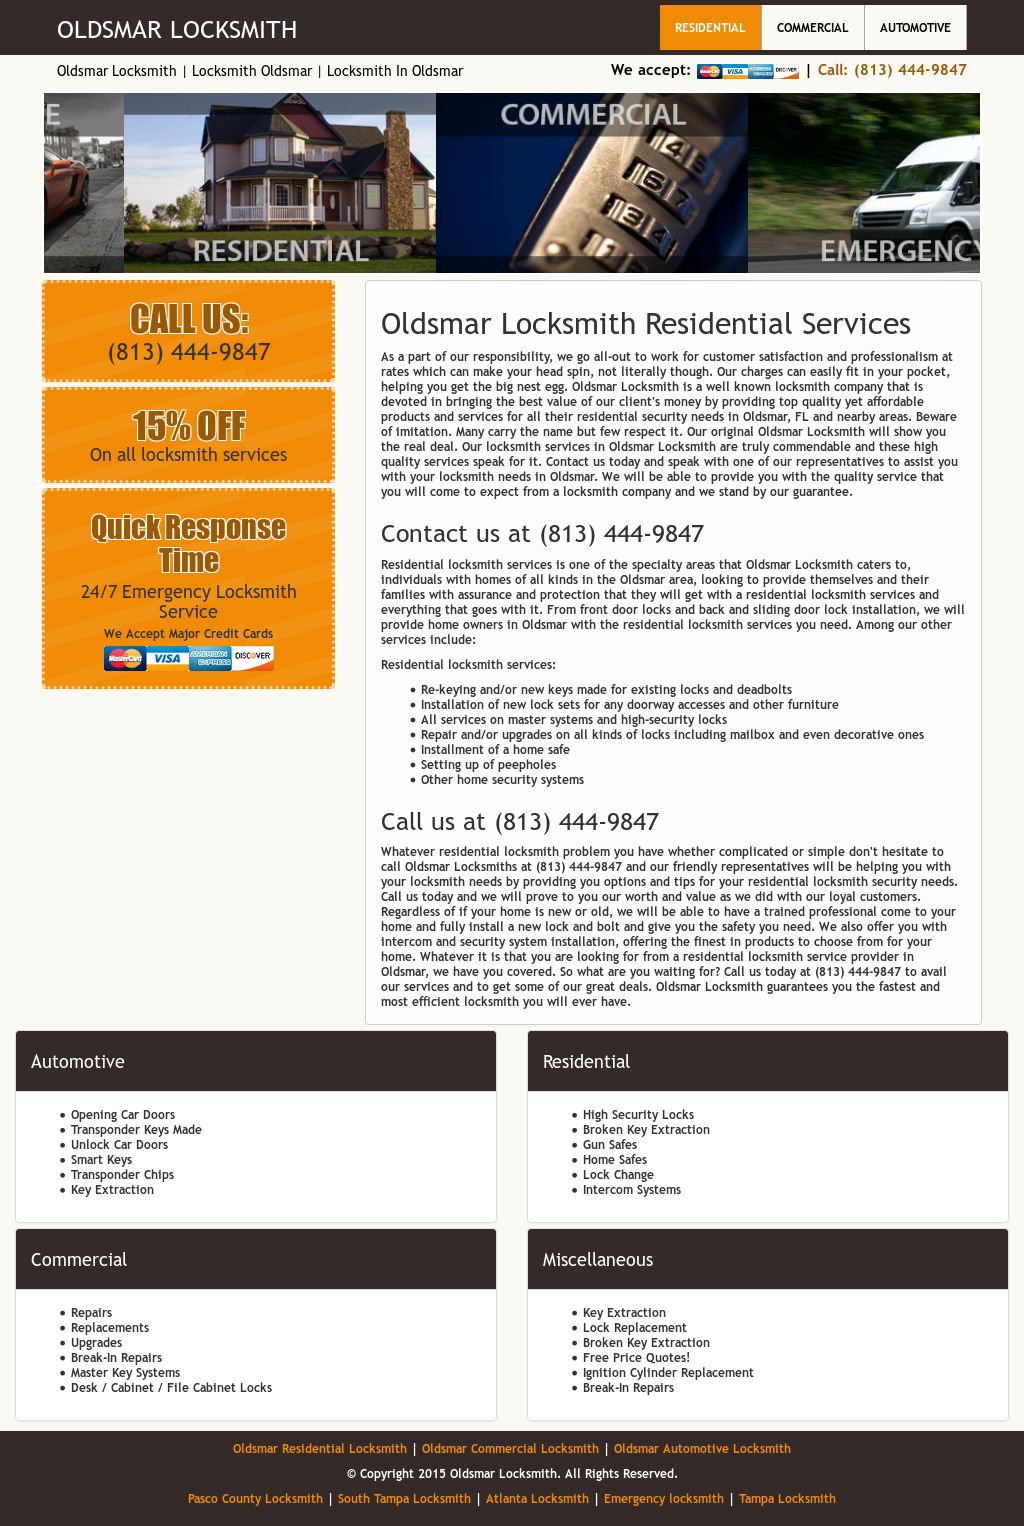 Oldsmar Locksmith Competitors, Revenue and Employees - Owler